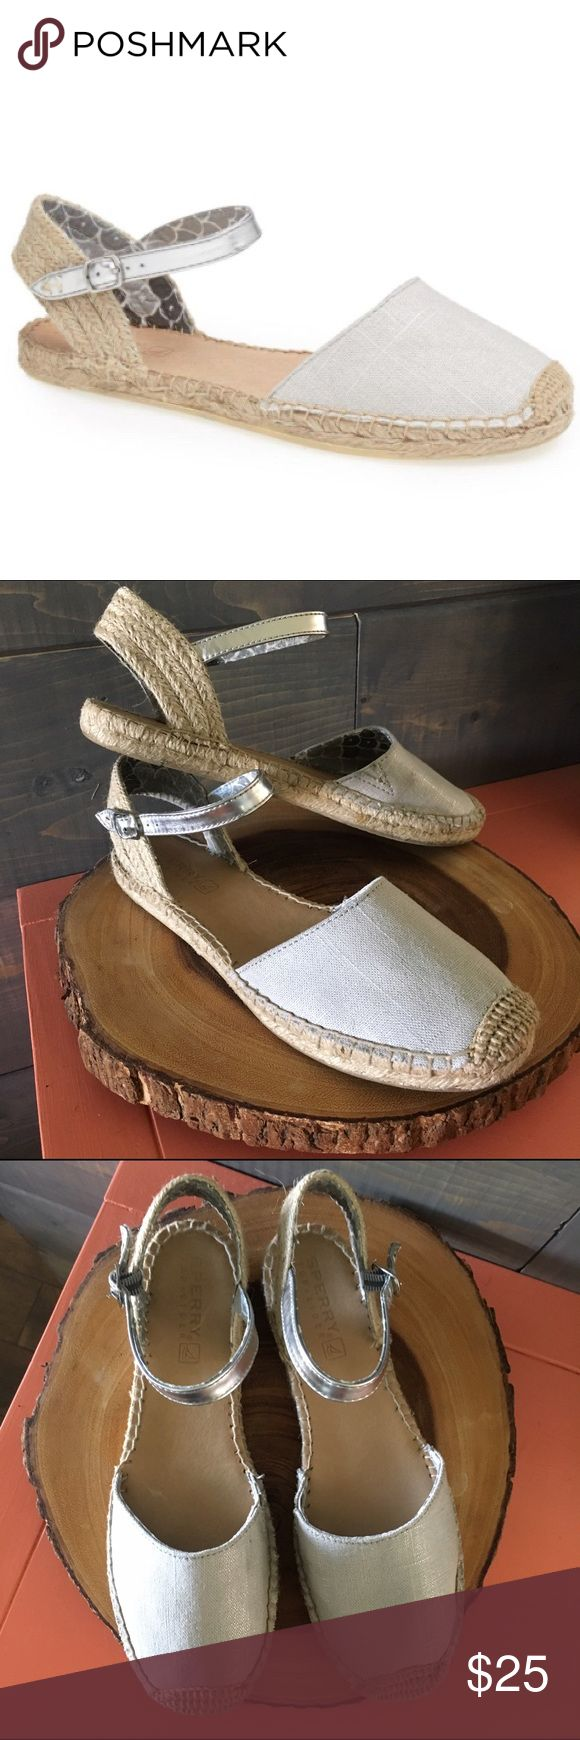 Sorry silver espadrilles shoes Size 8.5 silver Sperry espadrilles sandals. Never worn! See details in last picture. Sperry Top-Sider Shoes Espadrilles